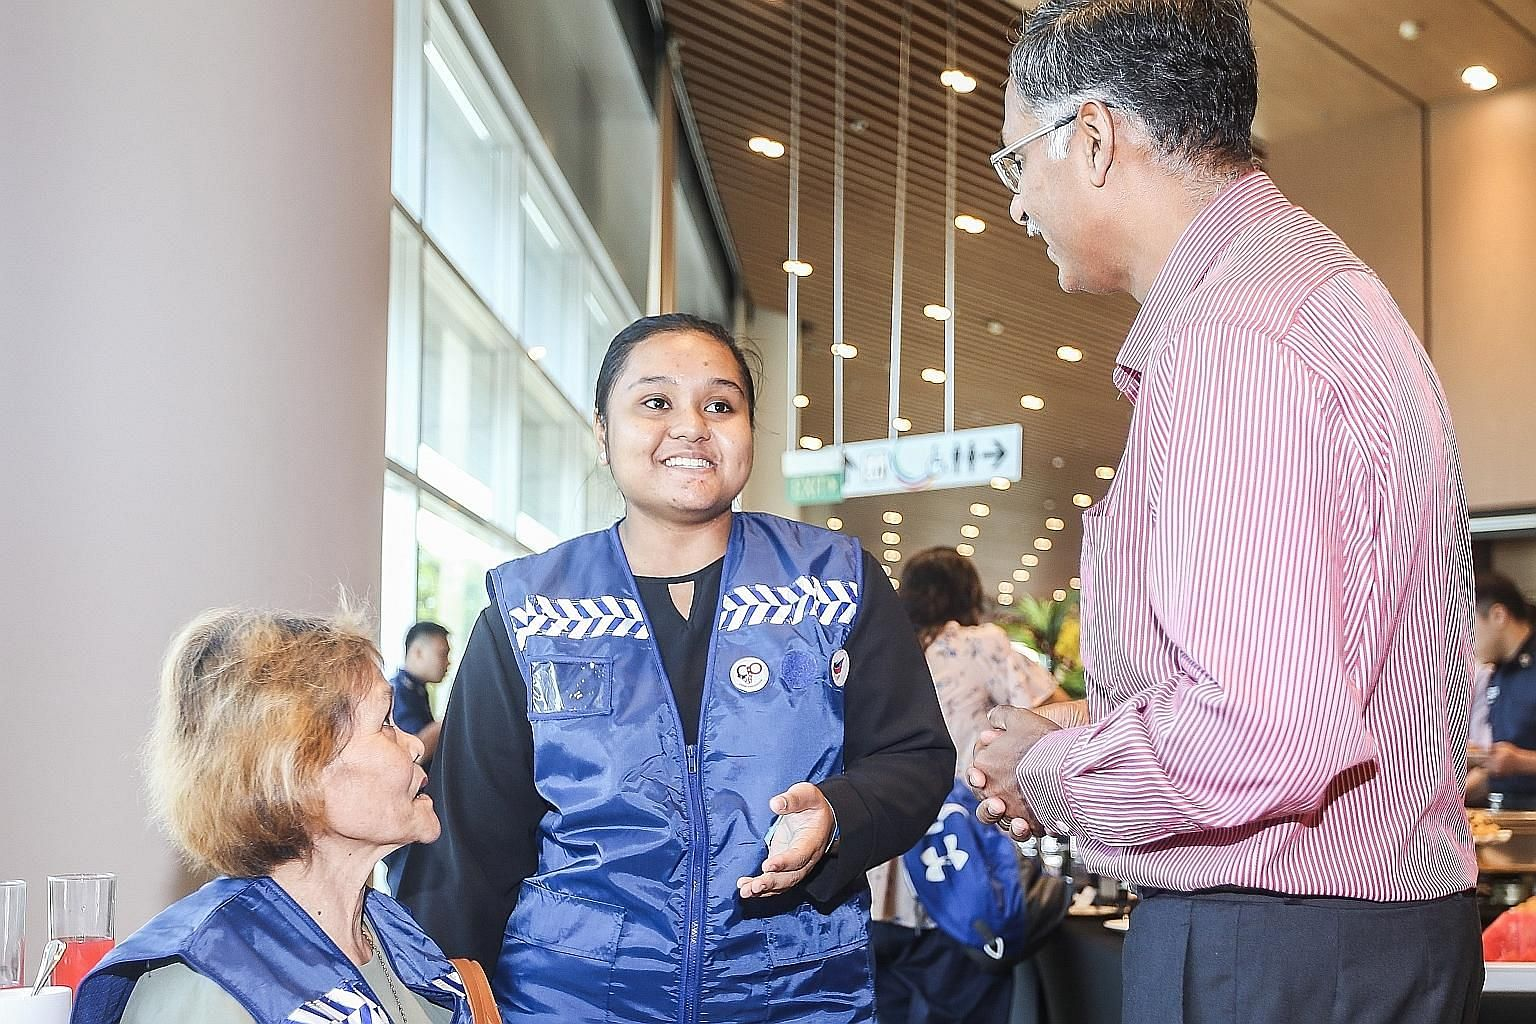 Left: Bukit Batok MP and GPC for Home Affairs and Law deputy chairman Murali Pillai with Citizens on Patrol (COP) volunteer Nur Arfa Muhammad Rahmat, 18, and her mother. Miss Arfa joined the scheme when she was 13. Right: Mr Ganesan Kulandai, 64, was